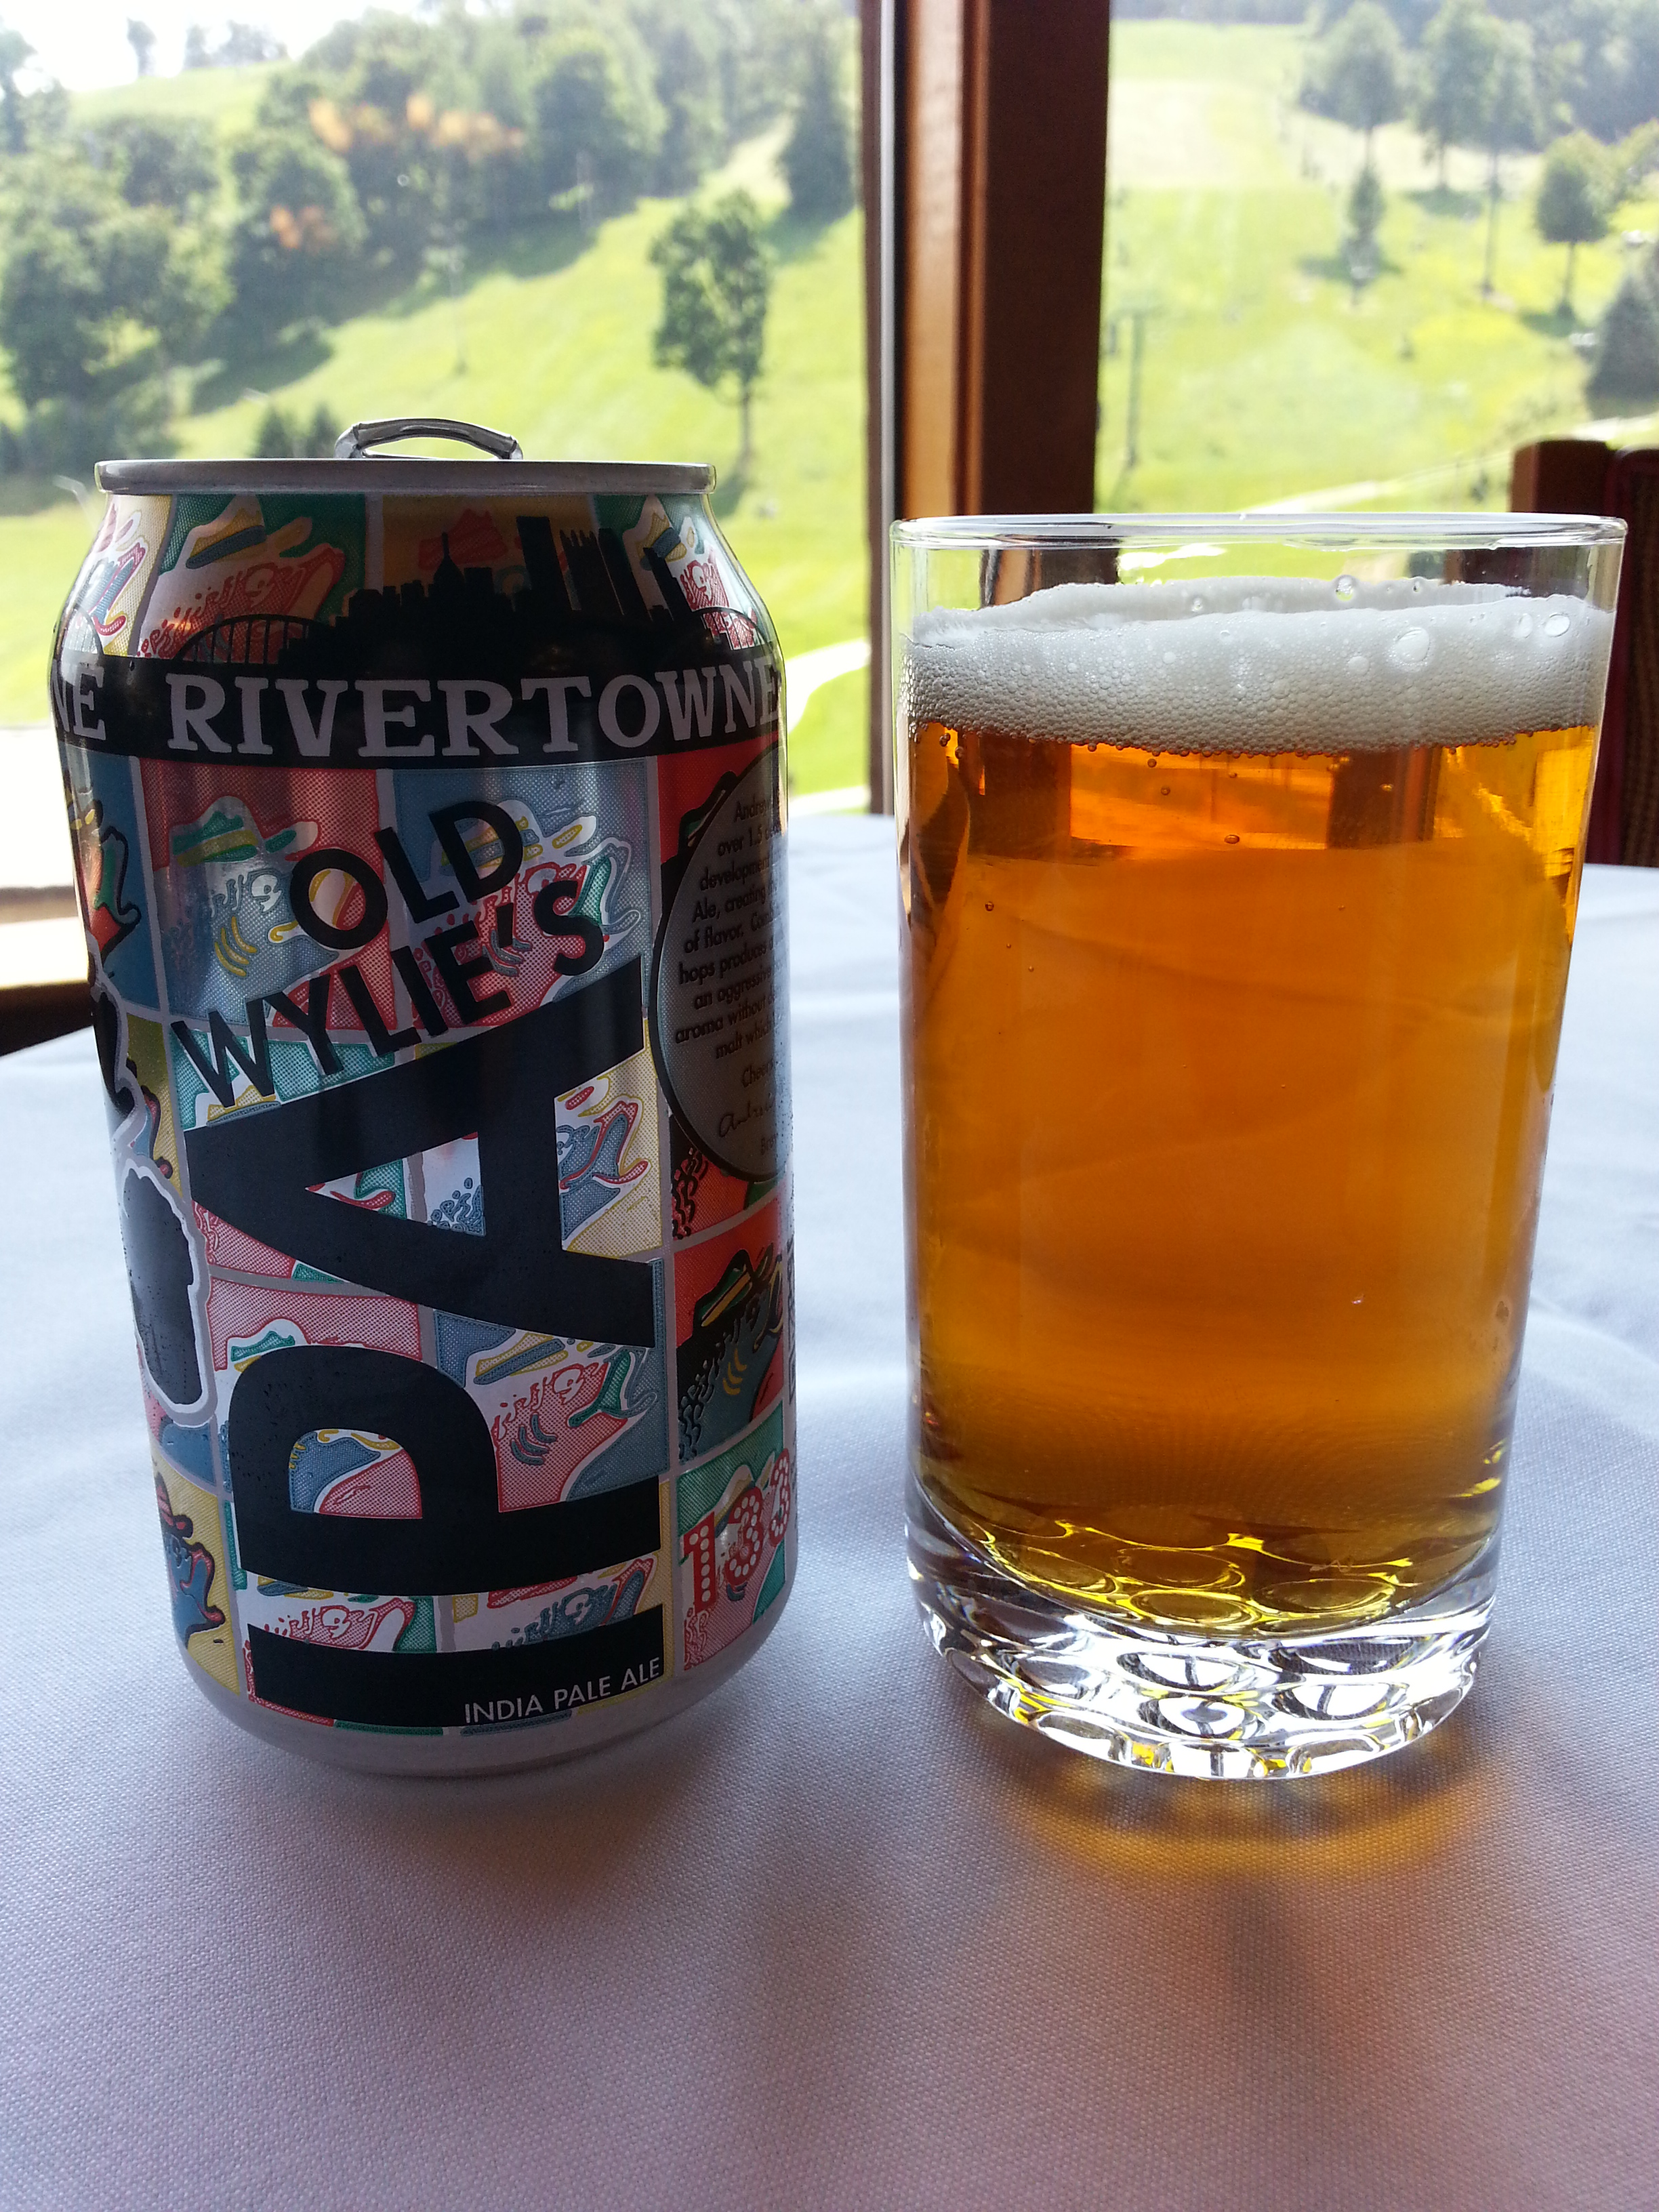 Rivertowne Old Wylie's IPA